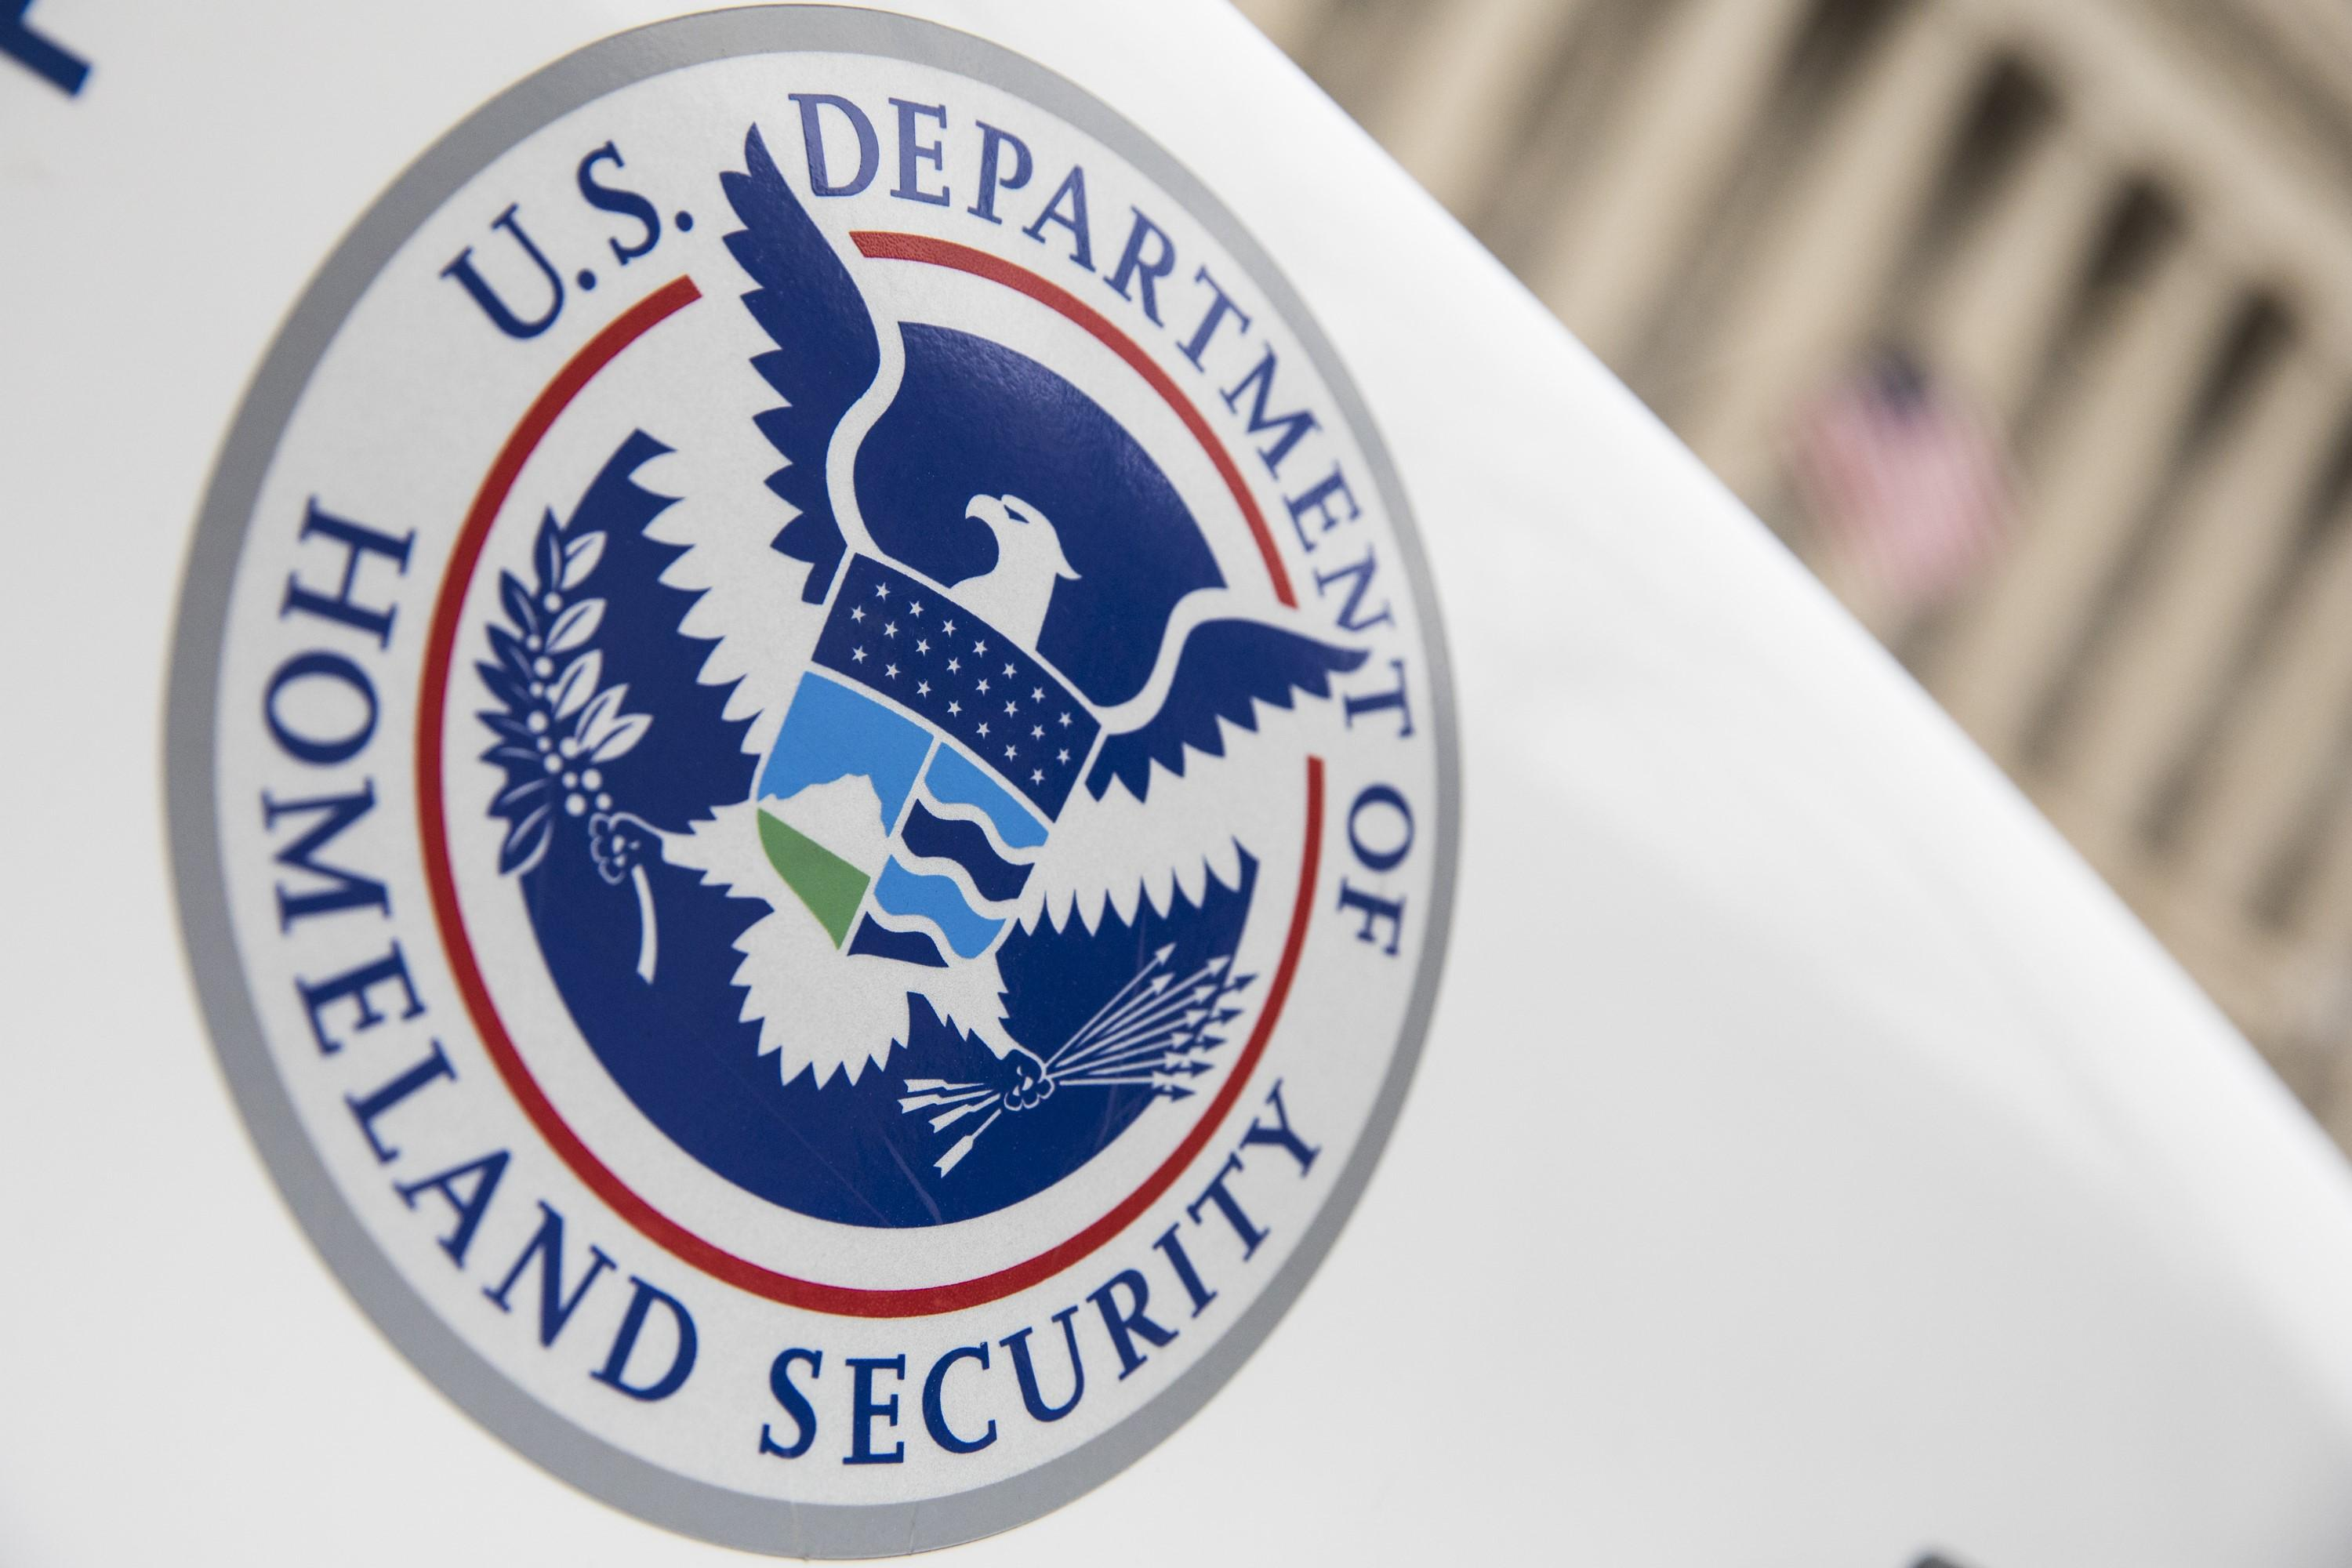 The Department of Homeland Security logo is seen on a law enforcement vehicle in Washington DC. US Department of Homeland Security Secretary Kirstjen Nielsen said Tuesday that terrorists will turn to blogs, chat rooms and encrypted chat apps to keep spreading their message online.